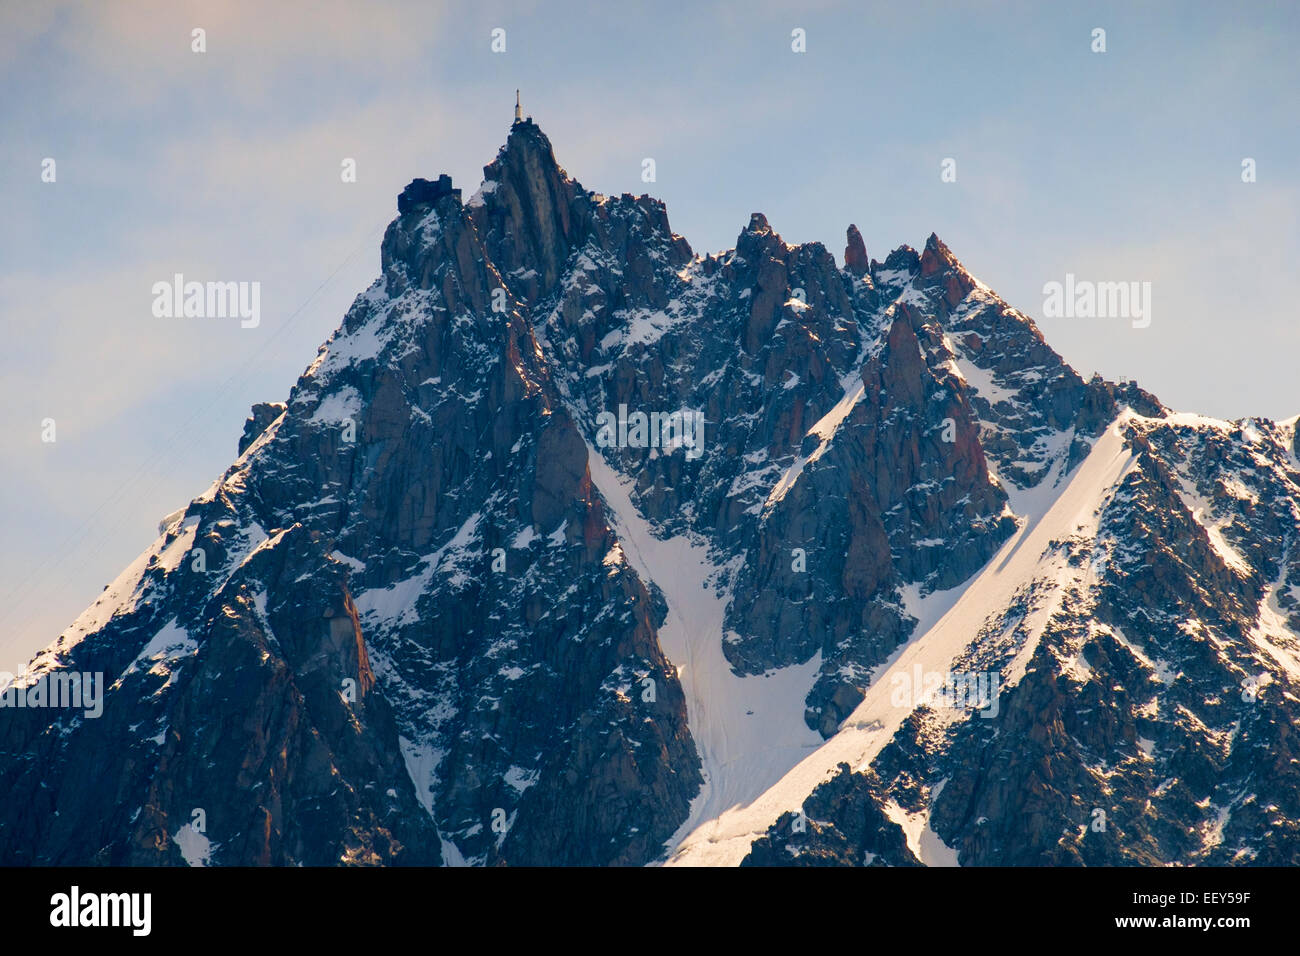 Aiguille du Midi with cable car station on the summit above Chamonix, French Alps, Haute-Savoie, France, Europe - Stock Image